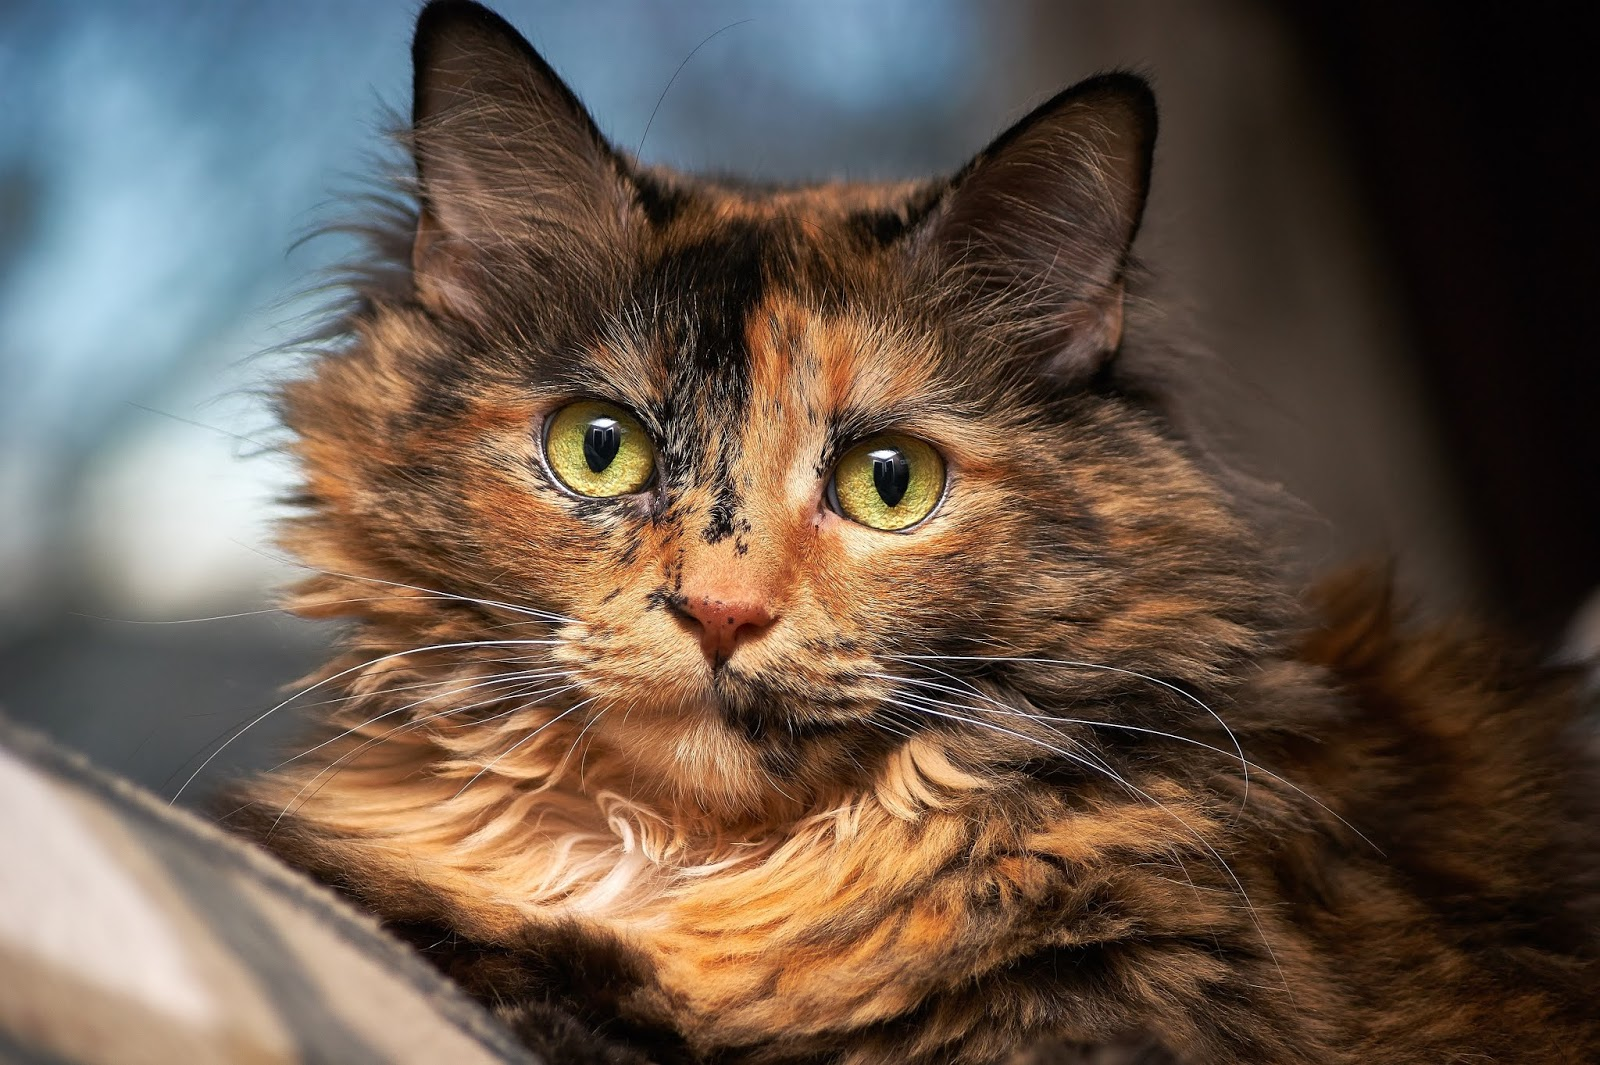 tortoiseshell-cat-in-selective-focus-photography,cat images